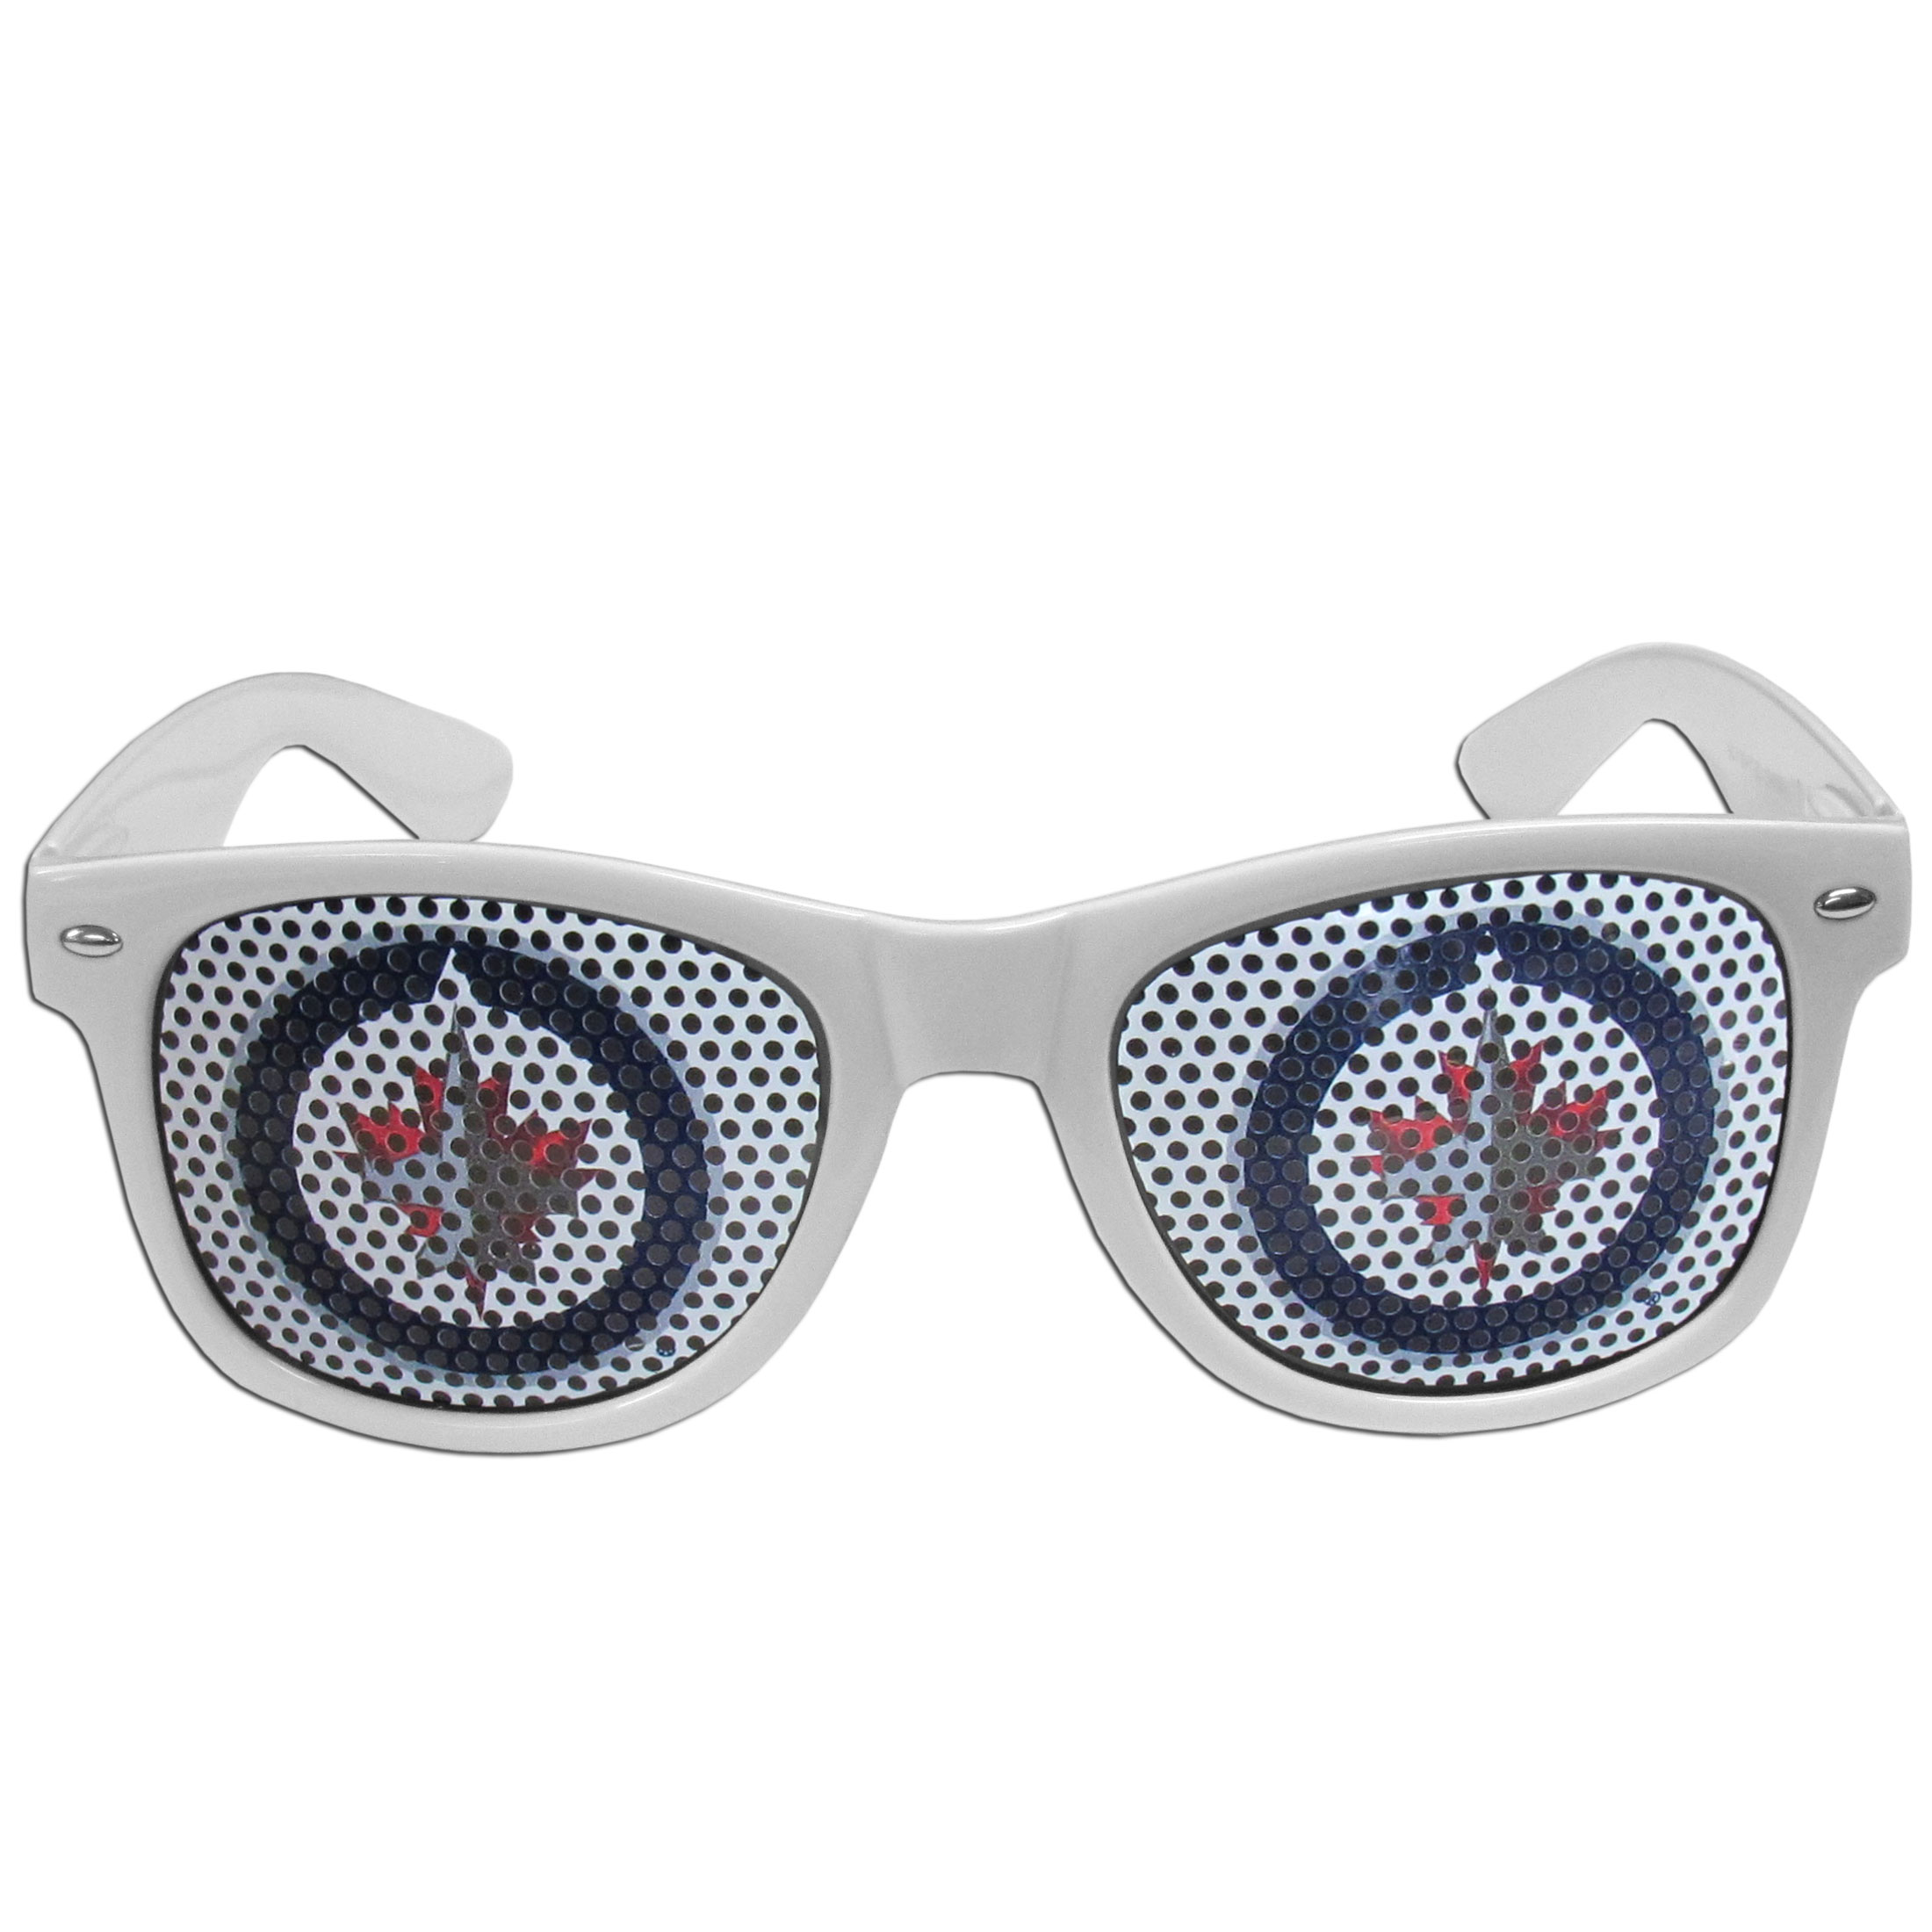 Winnipeg Jets Game Day Shades - Officially licensed Winnipeg Jets game day shades are the perfect accessory for the devoted Winnipeg Jets fan! The Winnipeg Jets game day shades have durable polycarbonate frames with flex hinges for comfort and damage resistance. The lenses feature brightly colored Winnipeg Jets clings that are perforated for visibility.